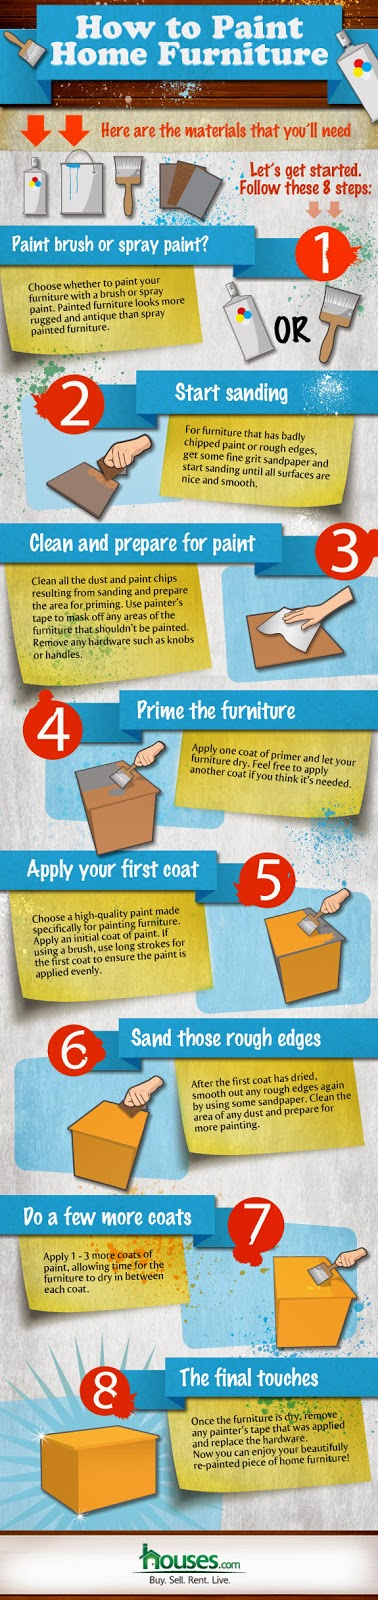 INFOGRAPHIC How To Paint Furniture In 8 Easy DIY Steps